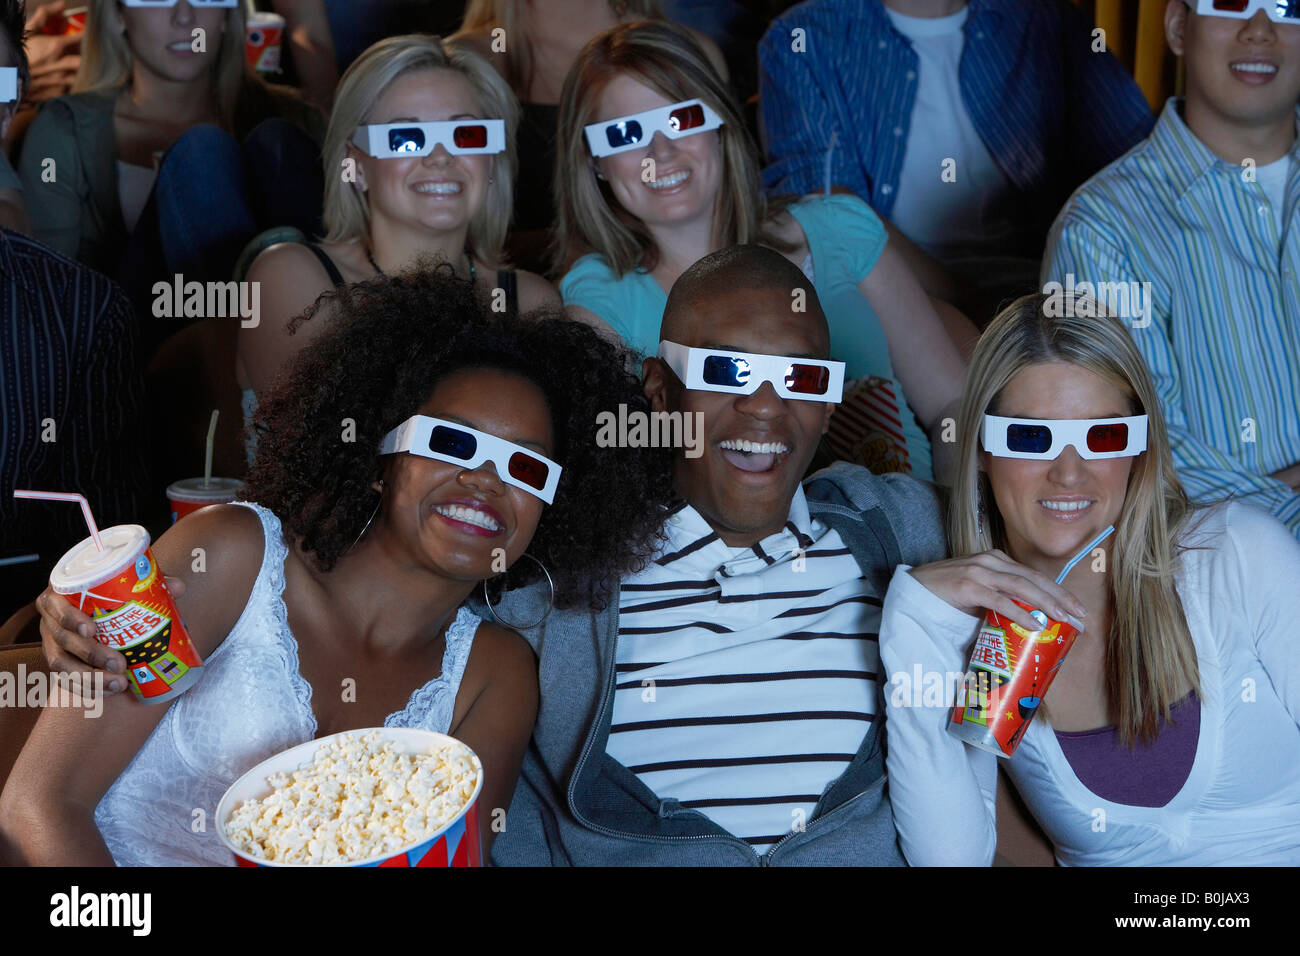 Audience Watching 3-D Movie - Stock Image